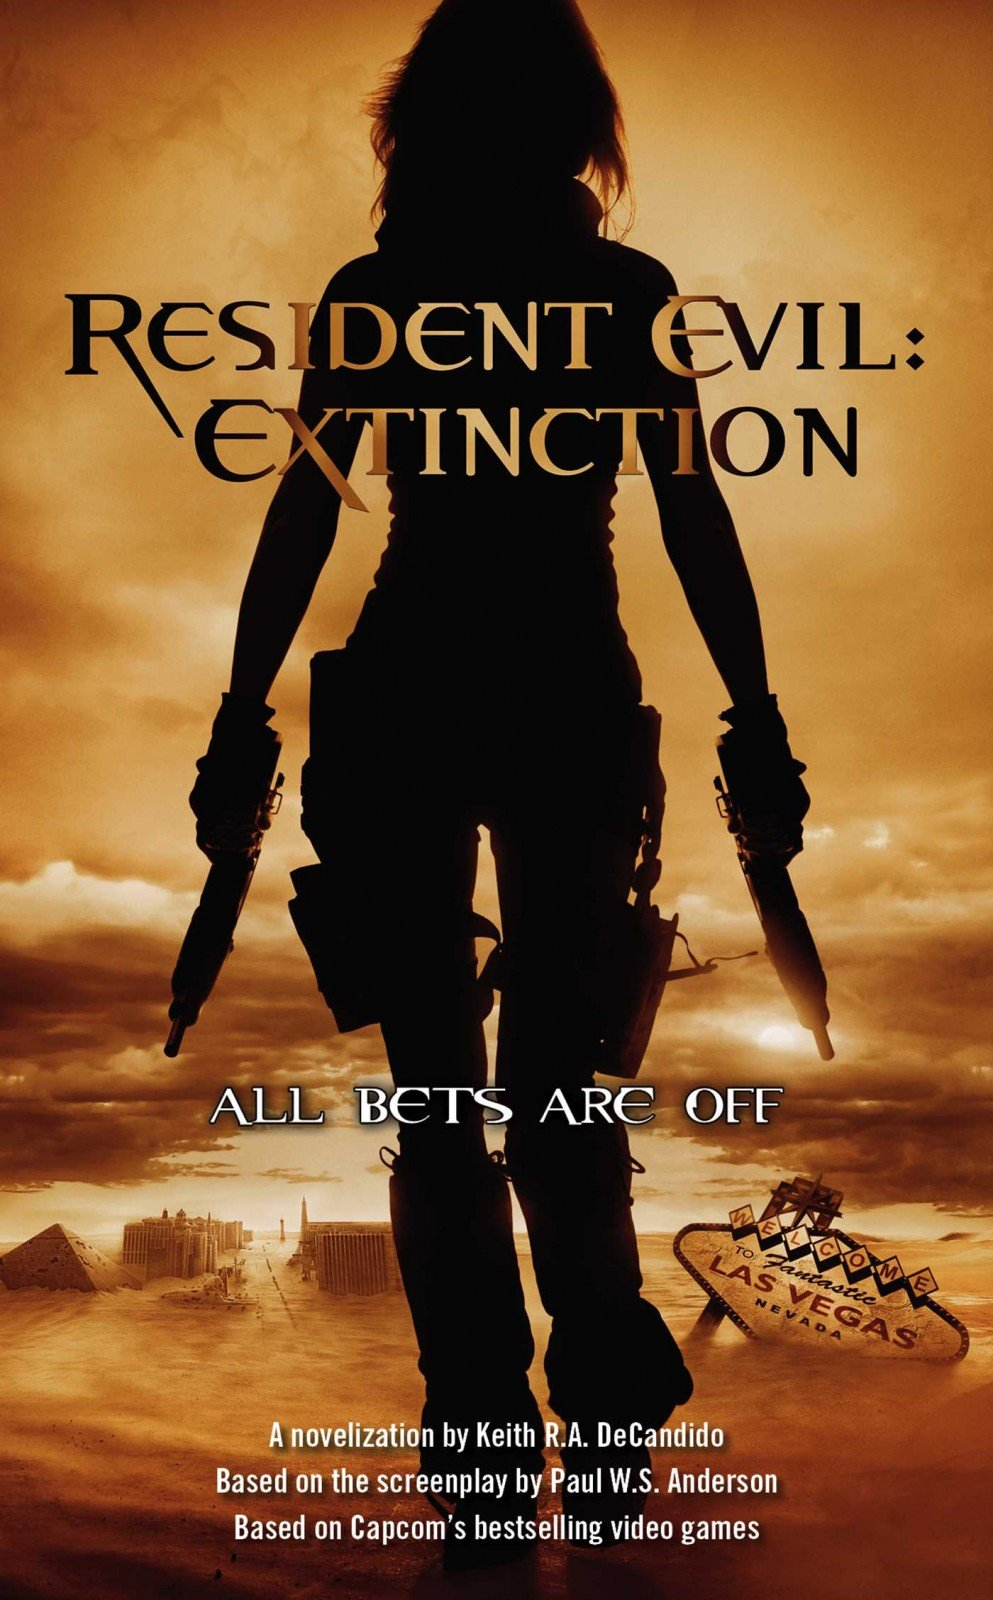 Resident Evil: Extinction (July 2007)